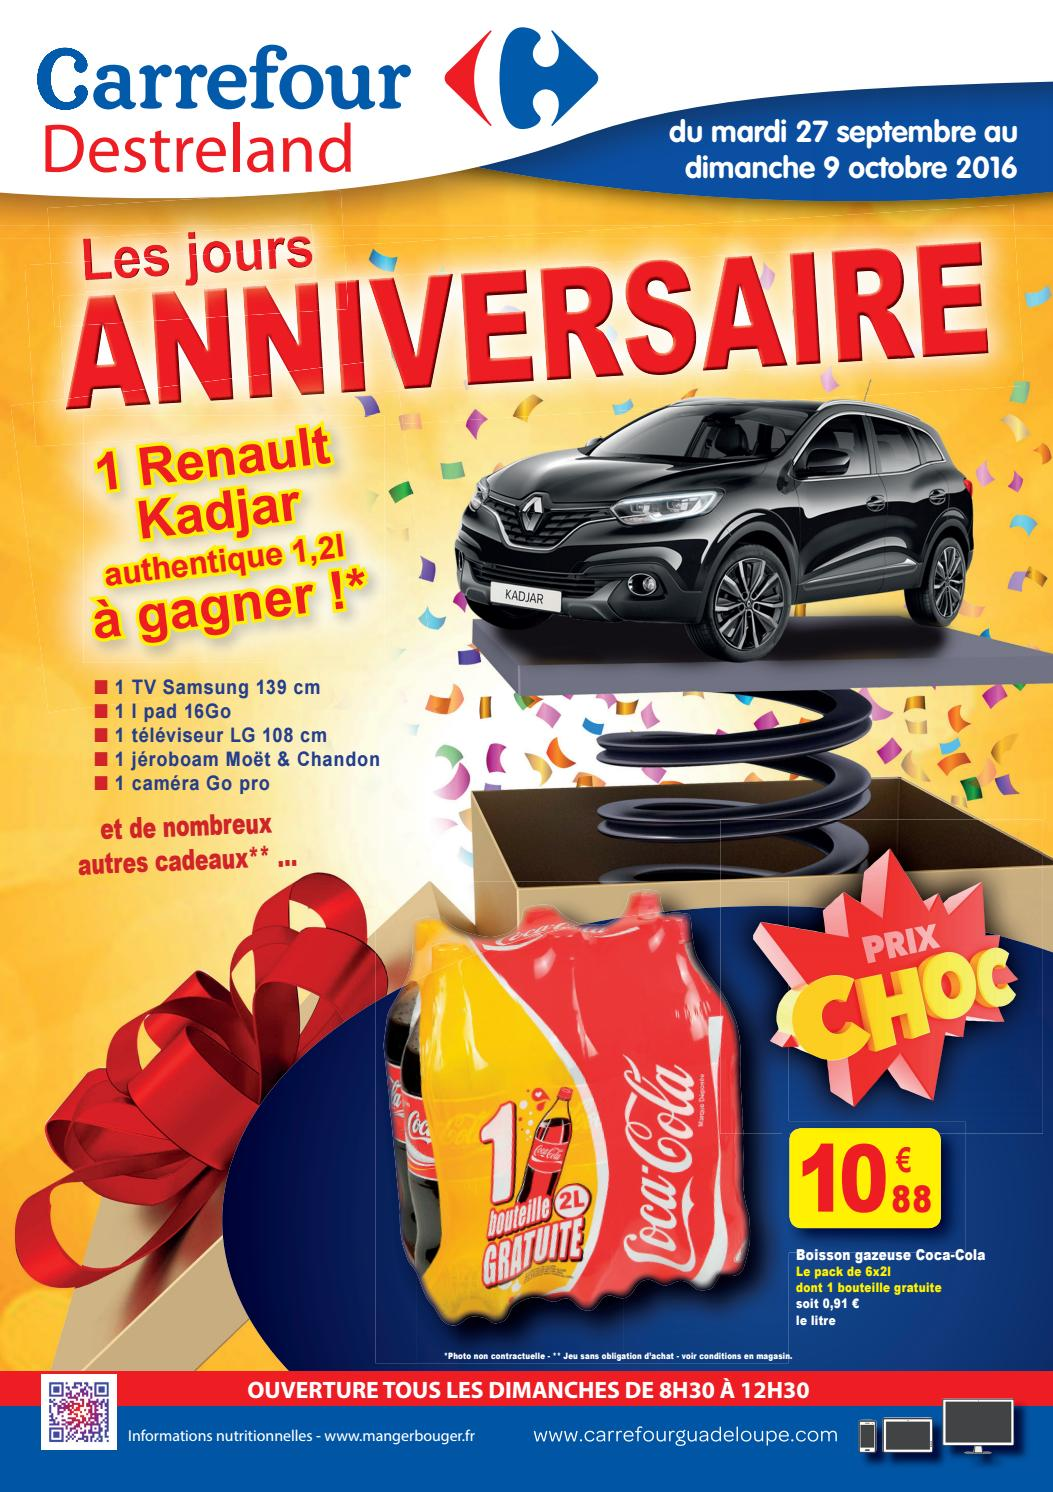 Table Pliante Carrefour Luxe Carrefour Destreland Les Jours Anniversaire Du 27 Of 21 Luxe Table Pliante Carrefour